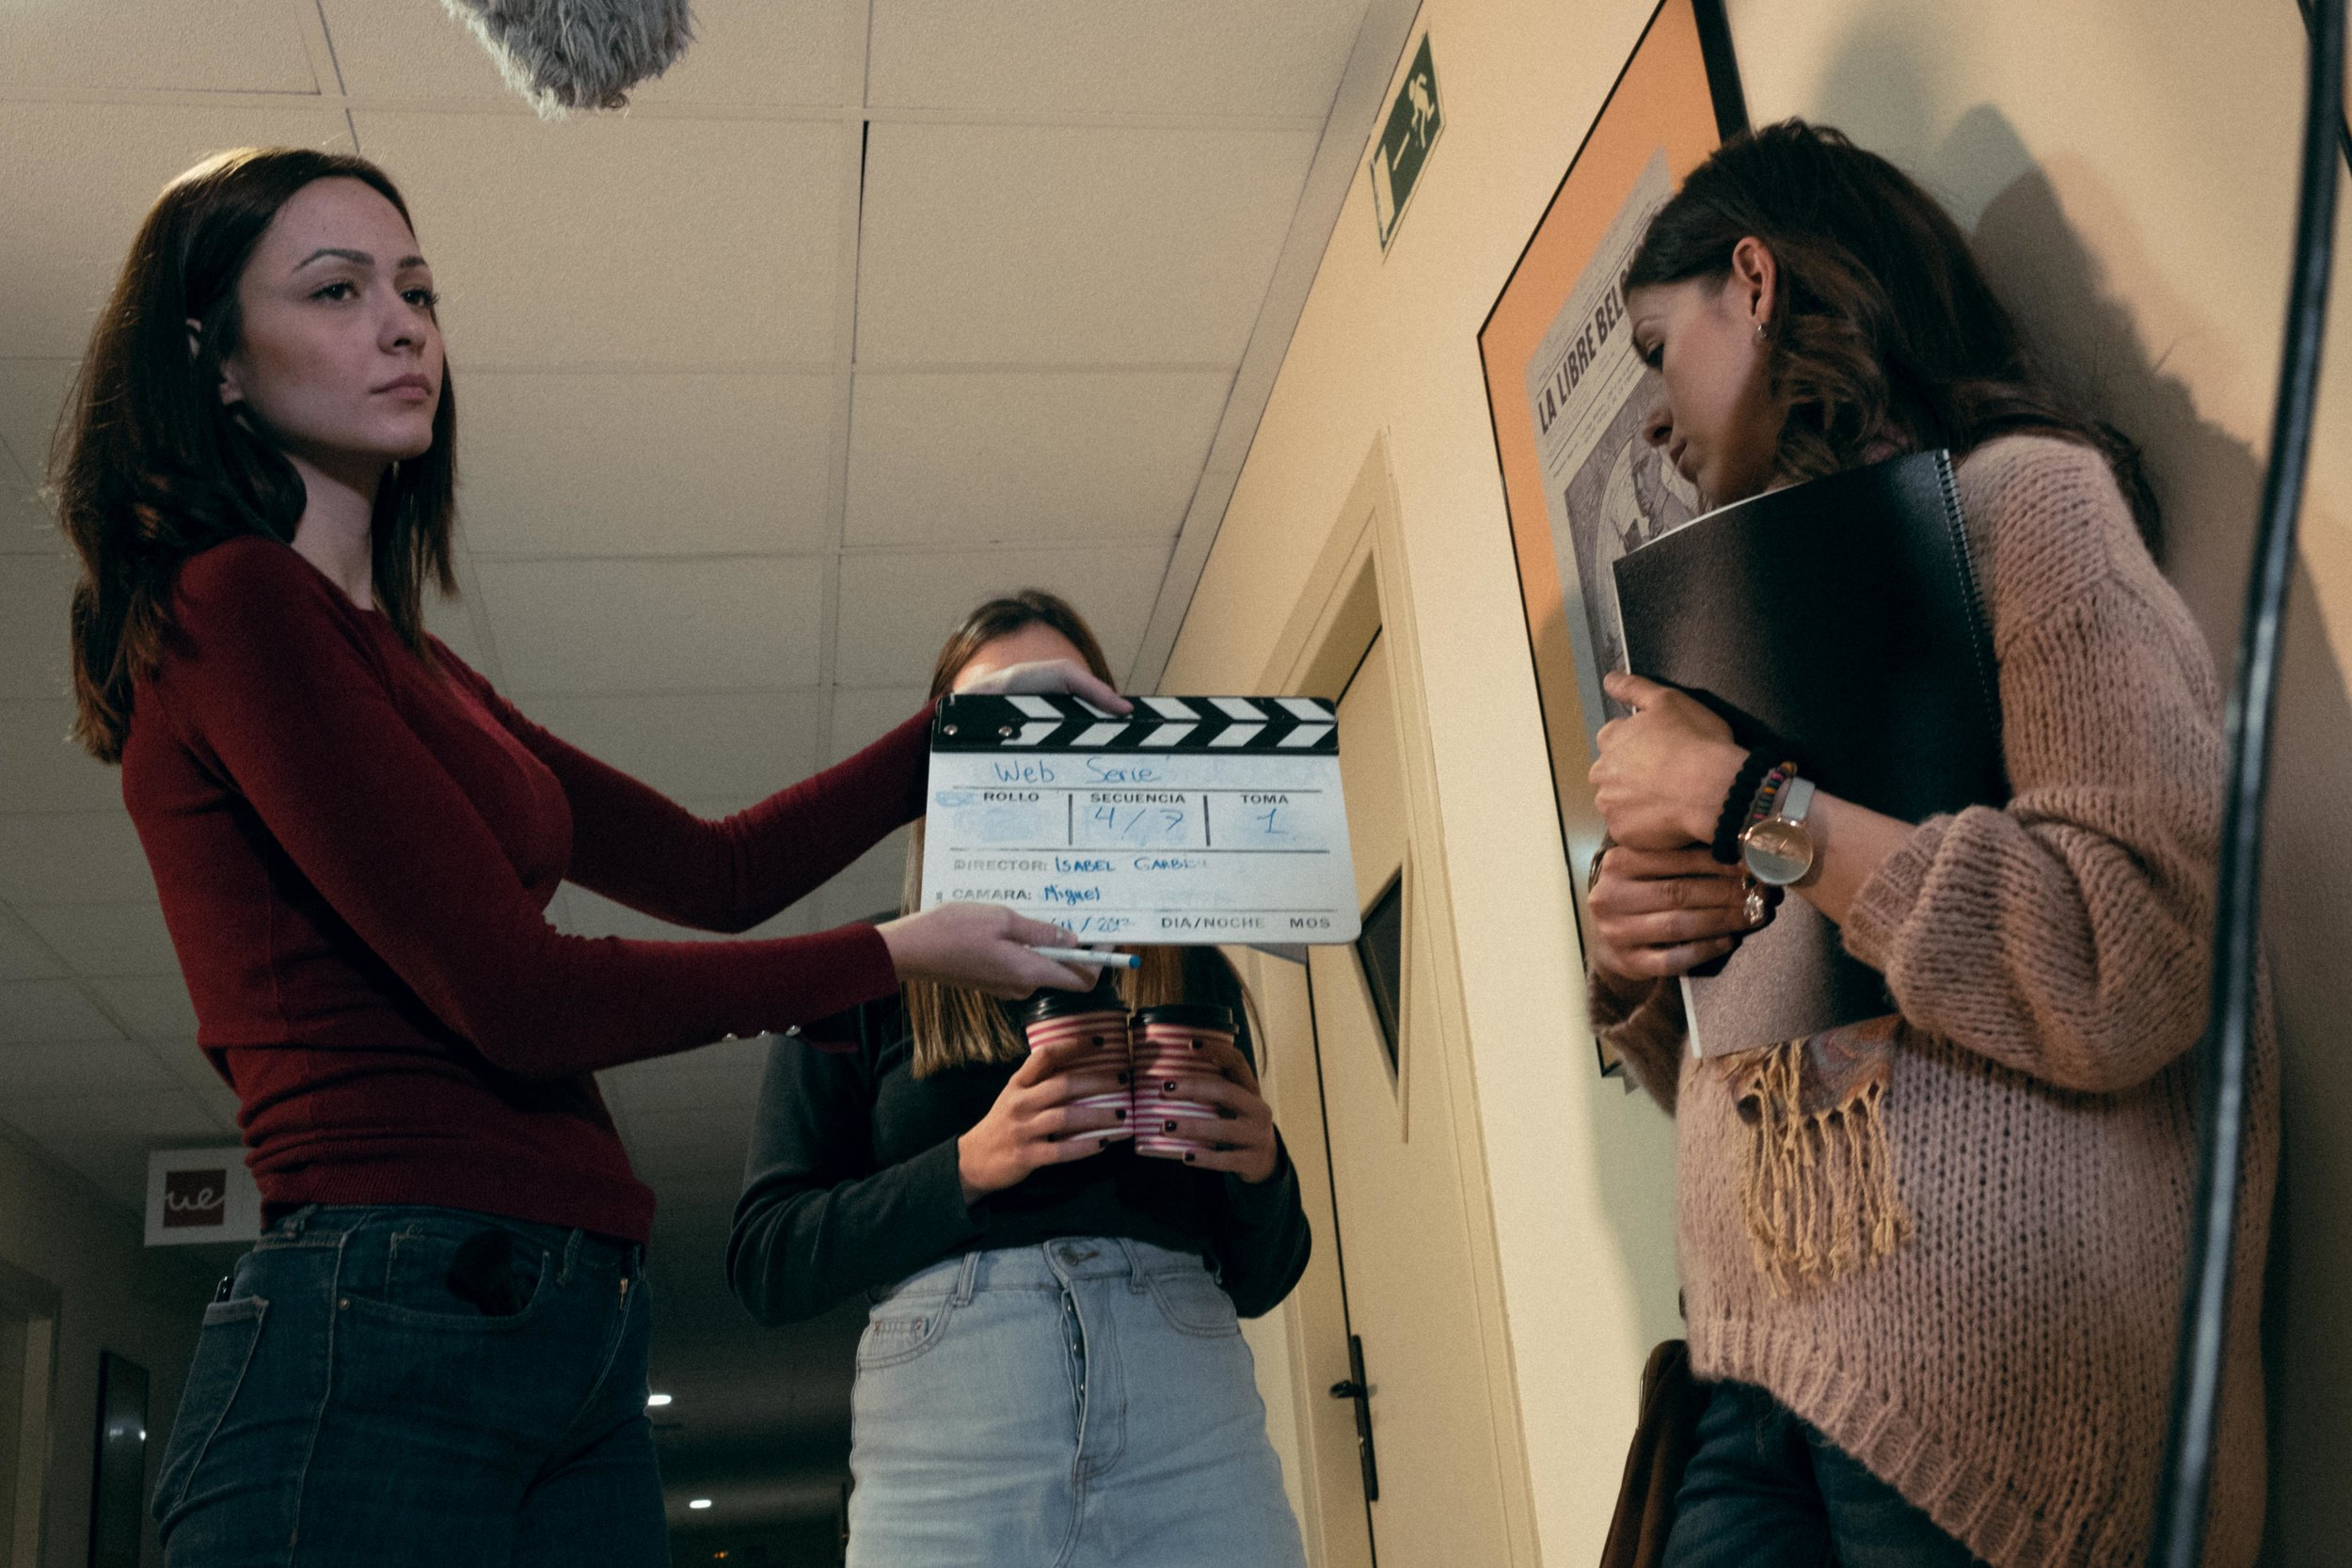 Unit still of the Web Serie shot at the University European in Madrid. Nov 11, 2017. ©JESUS HELLIN